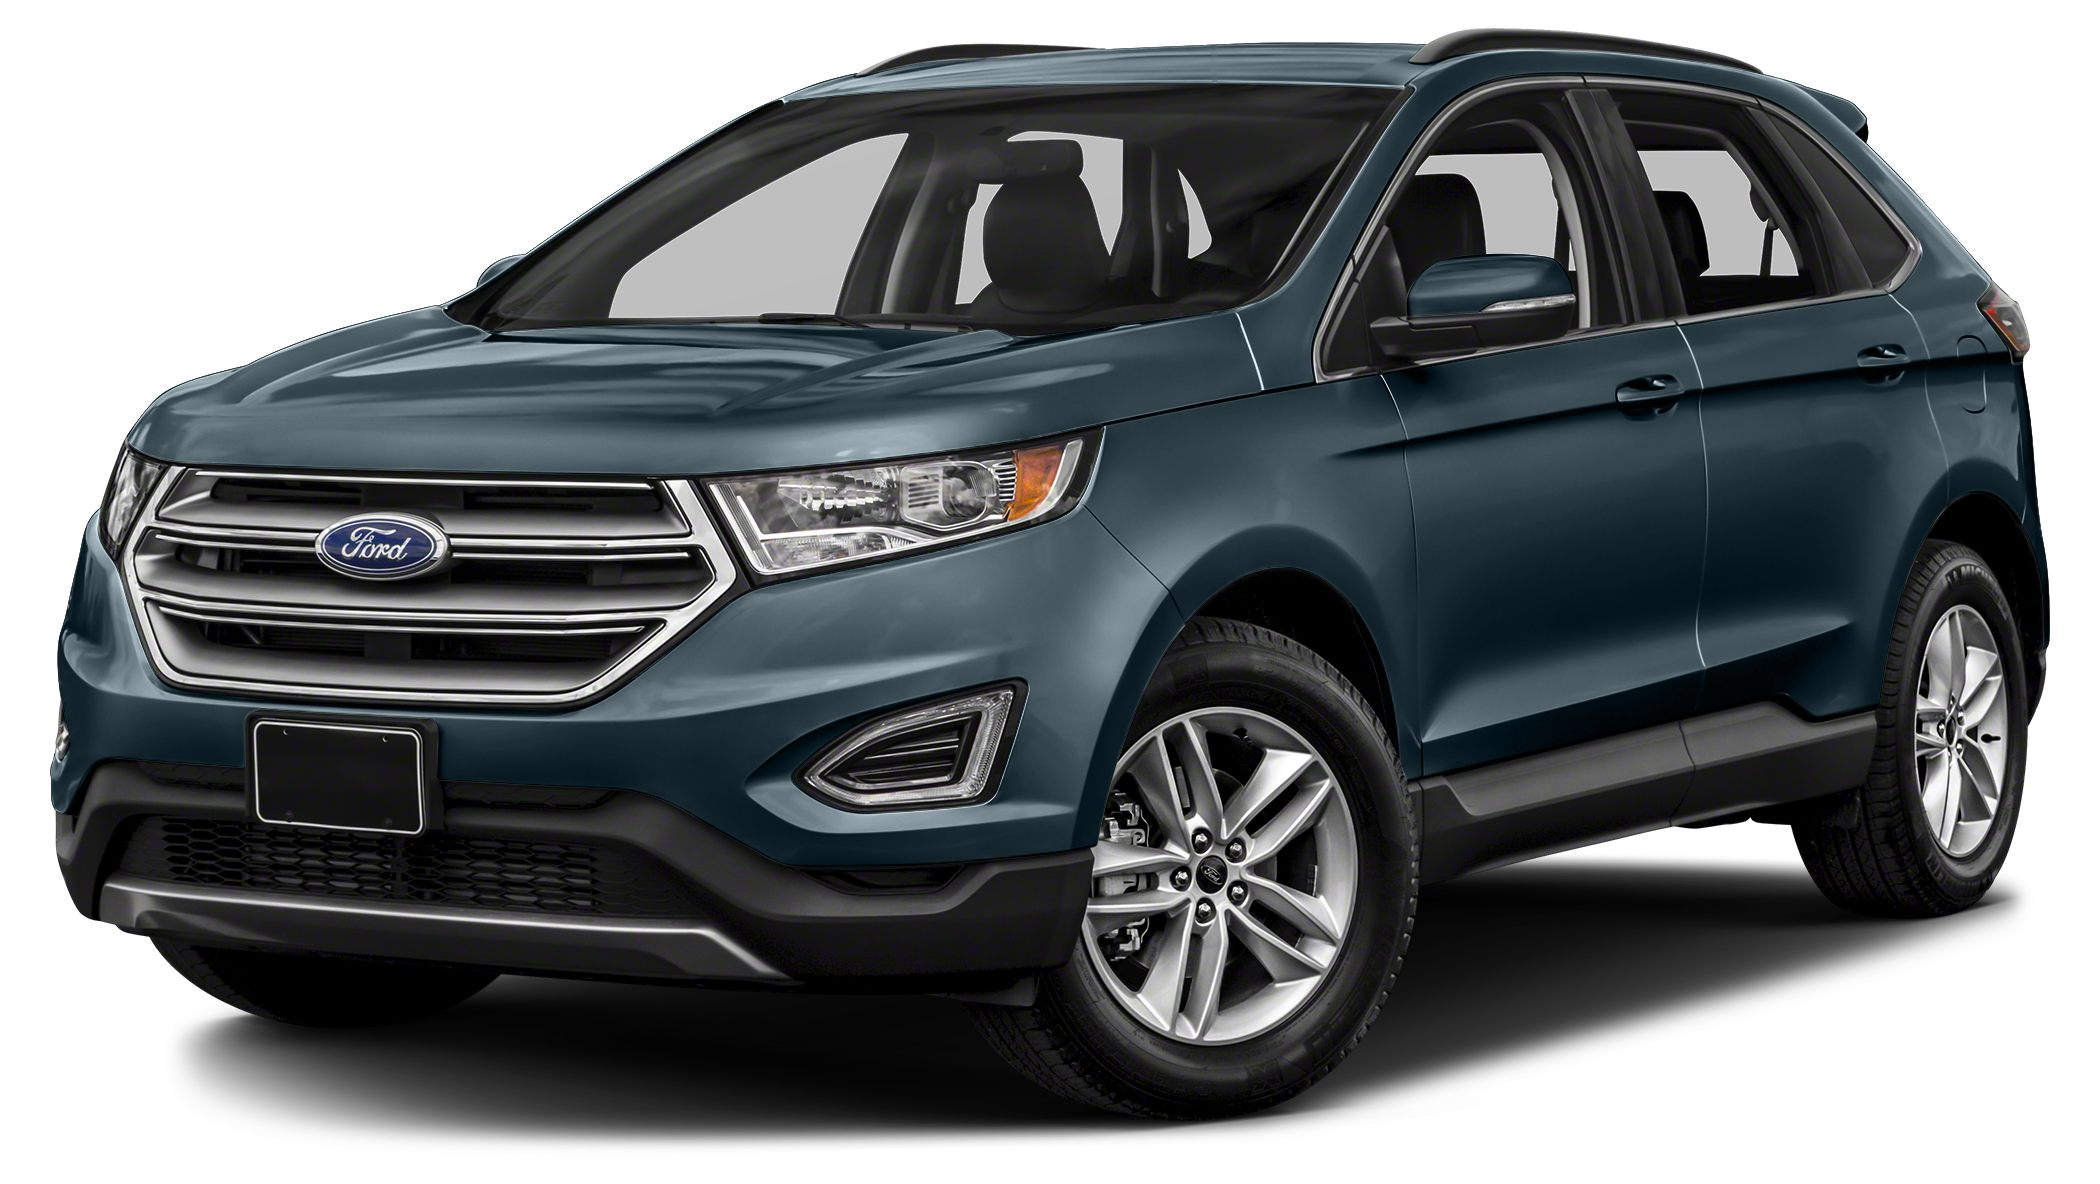 2015 Ford Edge SEL The all new 2015 Ford Edge is taking crossovers to a whole new level The SE S